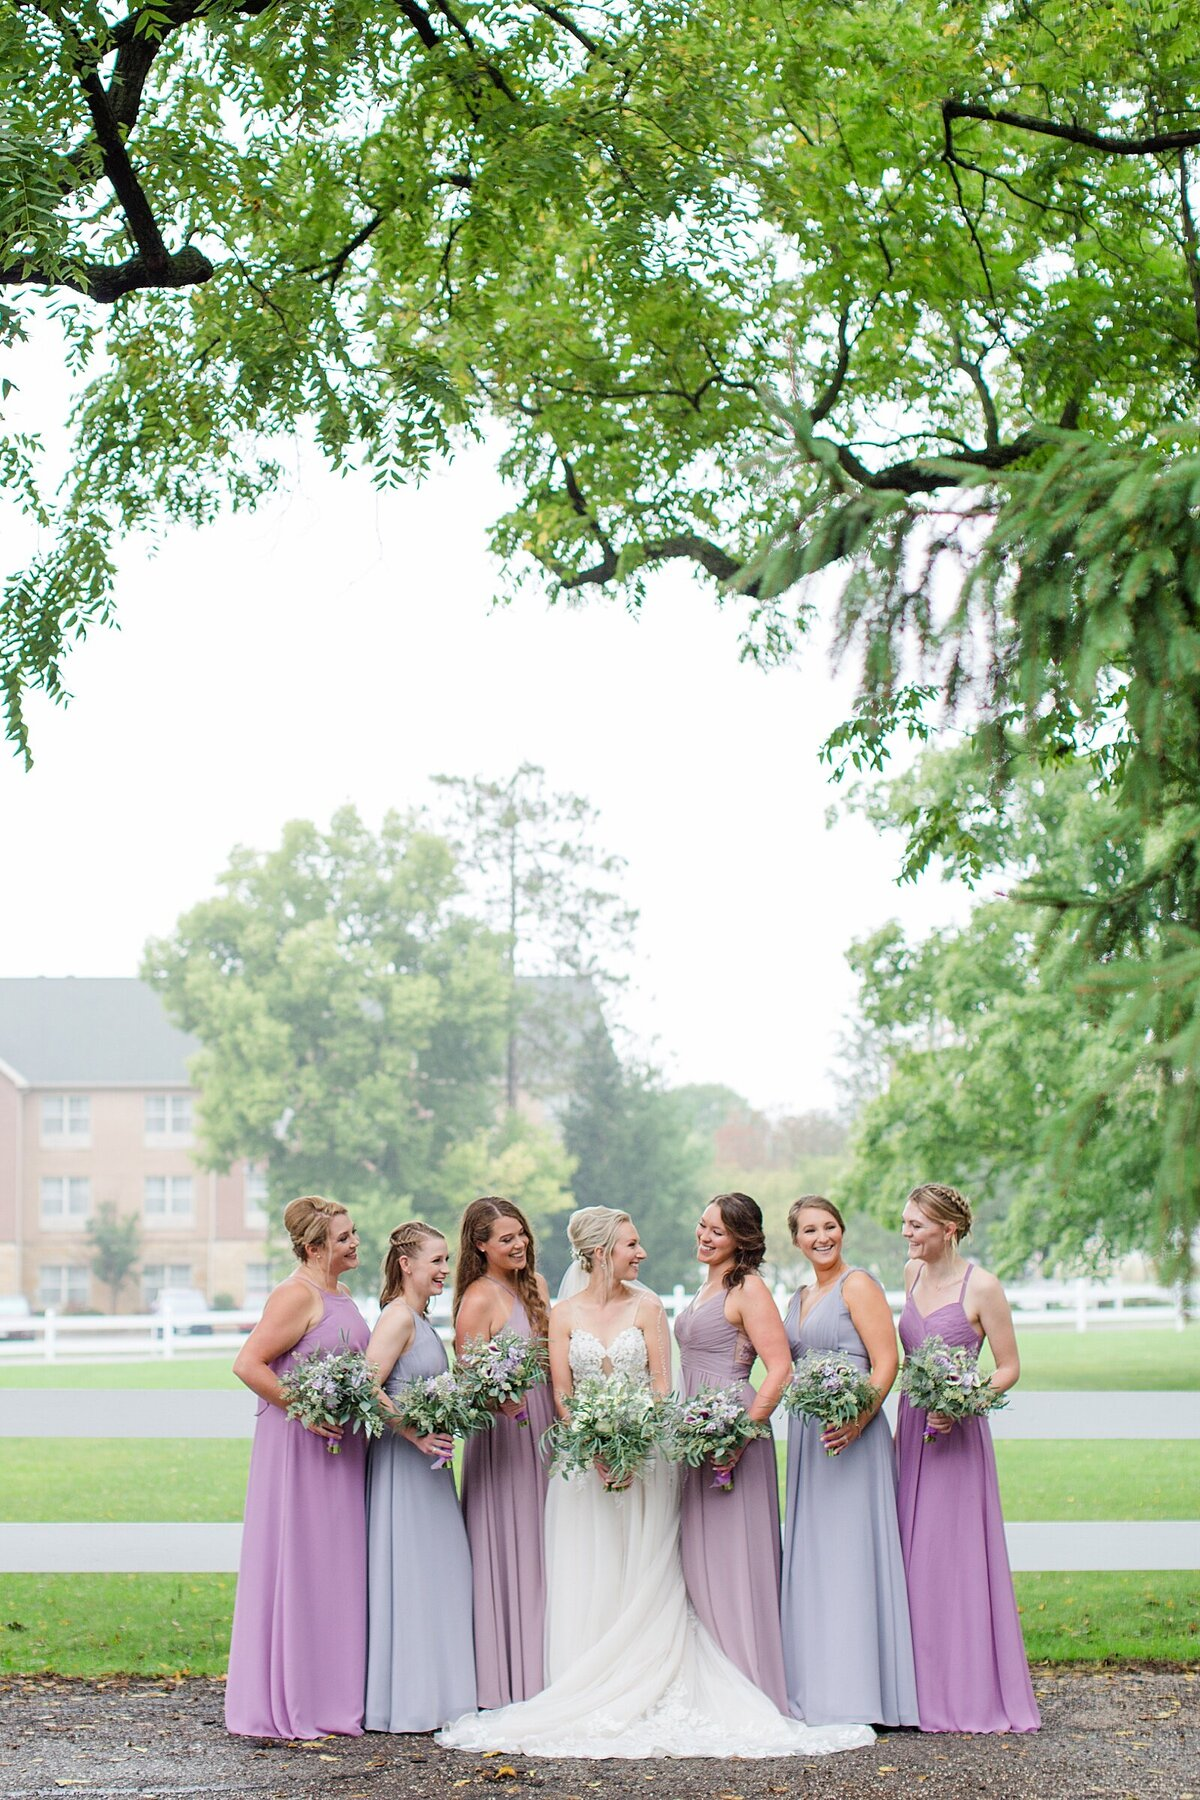 Ashley_Dahl_Photography_Minneapolis_Wedding_Photographer_Quiveys_Grove_Madison_Wisconsin_Wedding_0078